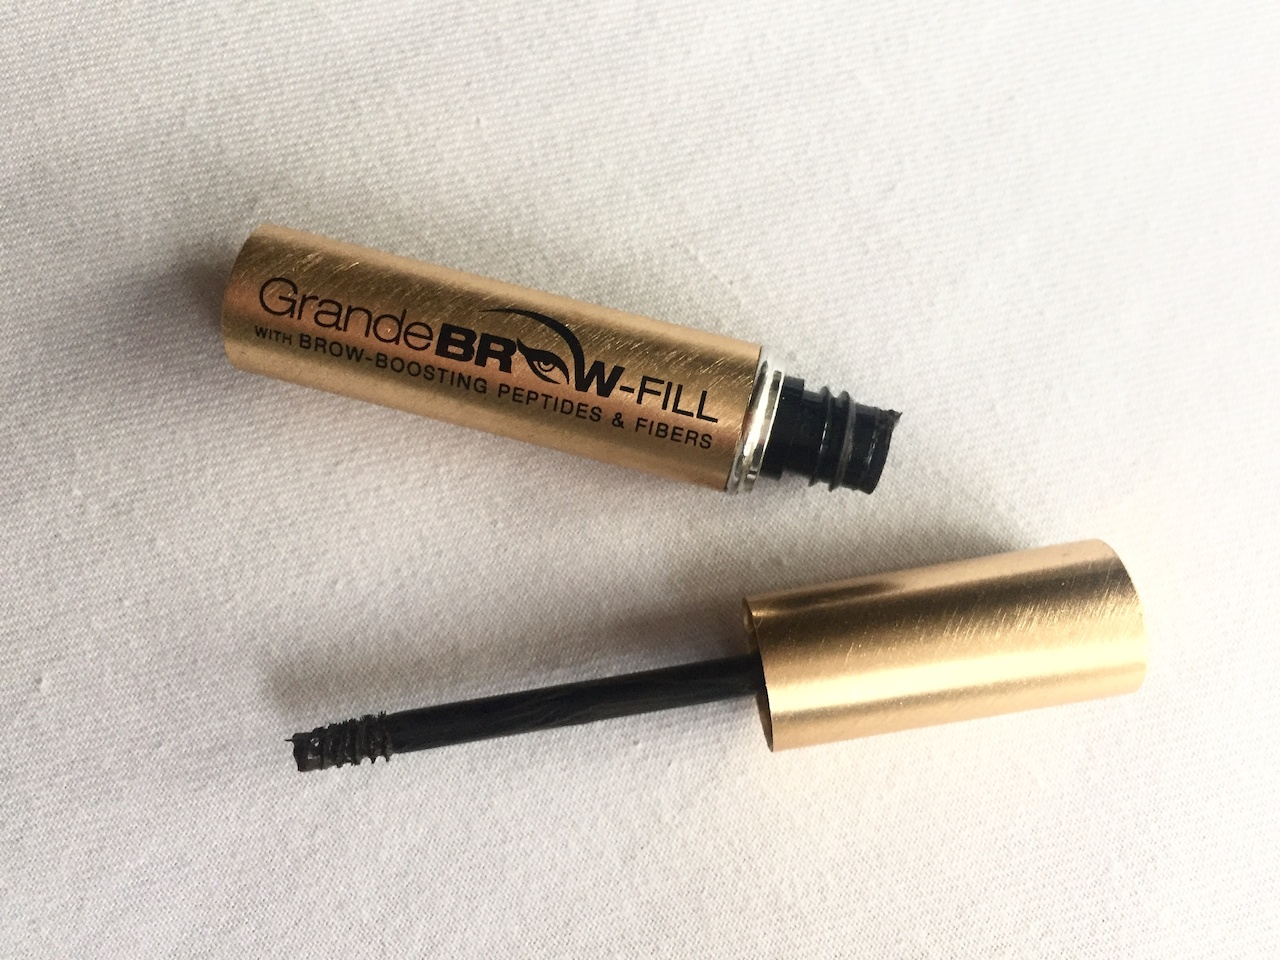 Grande Brow Fill, $19.95 from Mona Esthetics